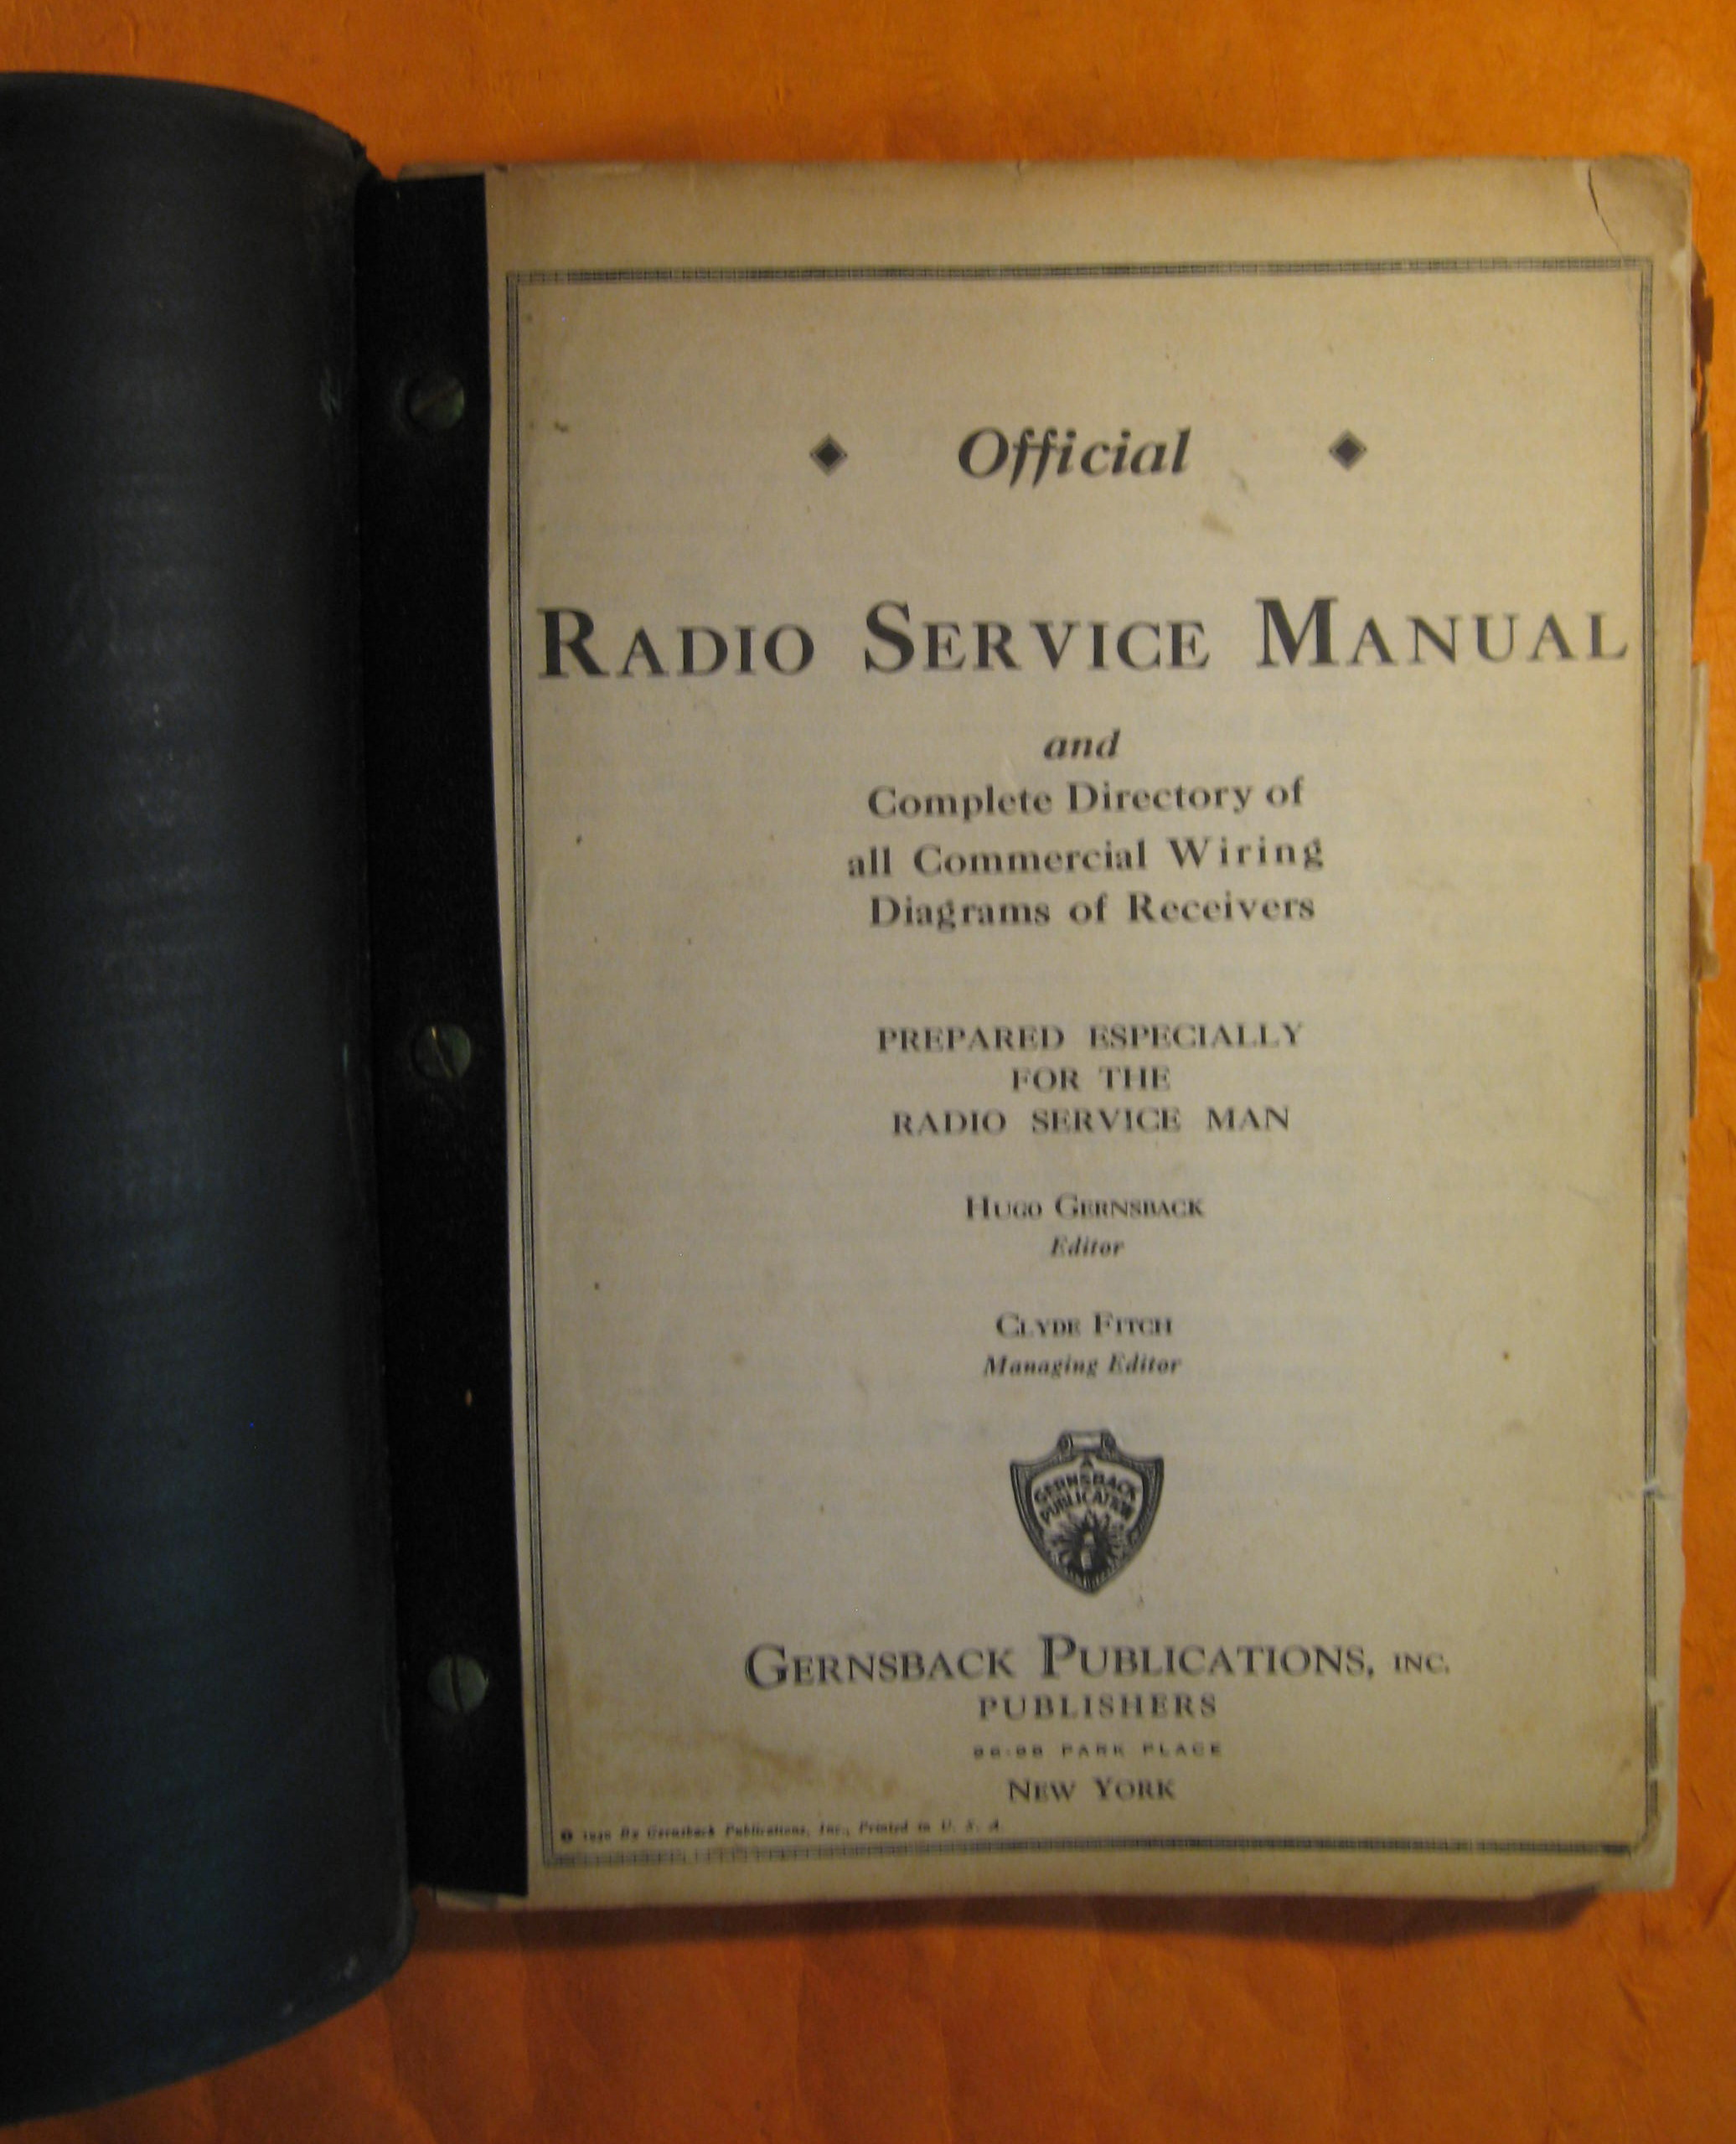 Official Radio Service Manual And Complete Directory Of All Commercial Wiring Diagrams Of